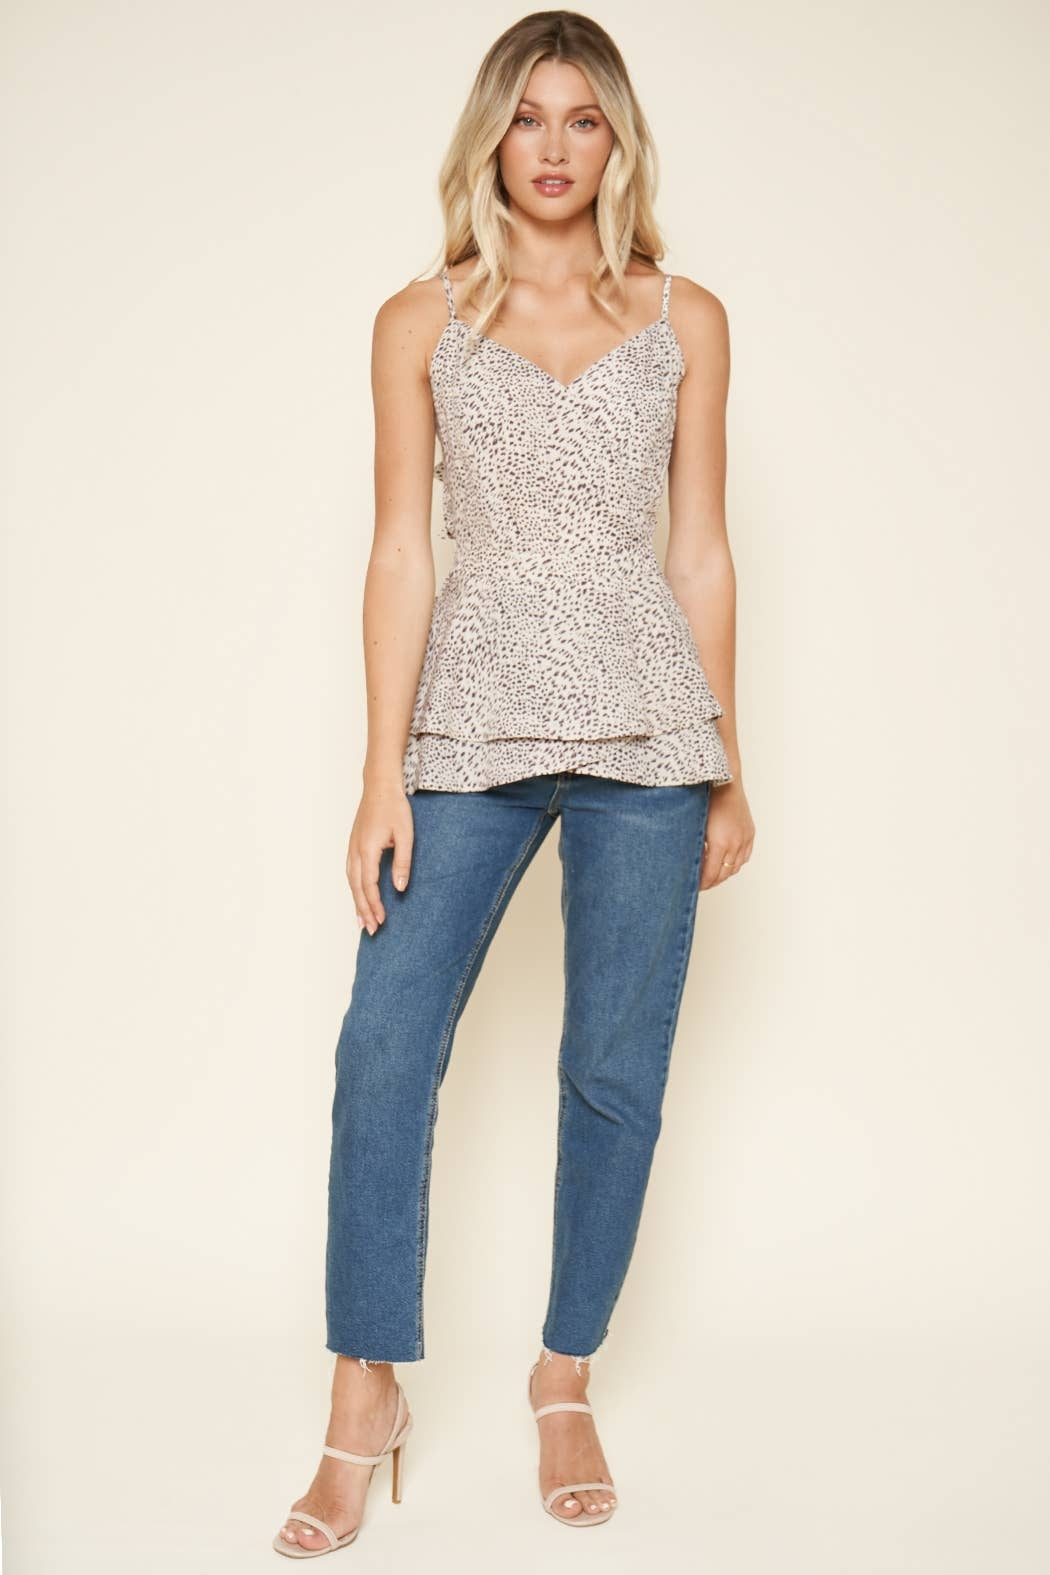 Sugarlips Carnaby Leopard Cami Top - Back Cropped Image